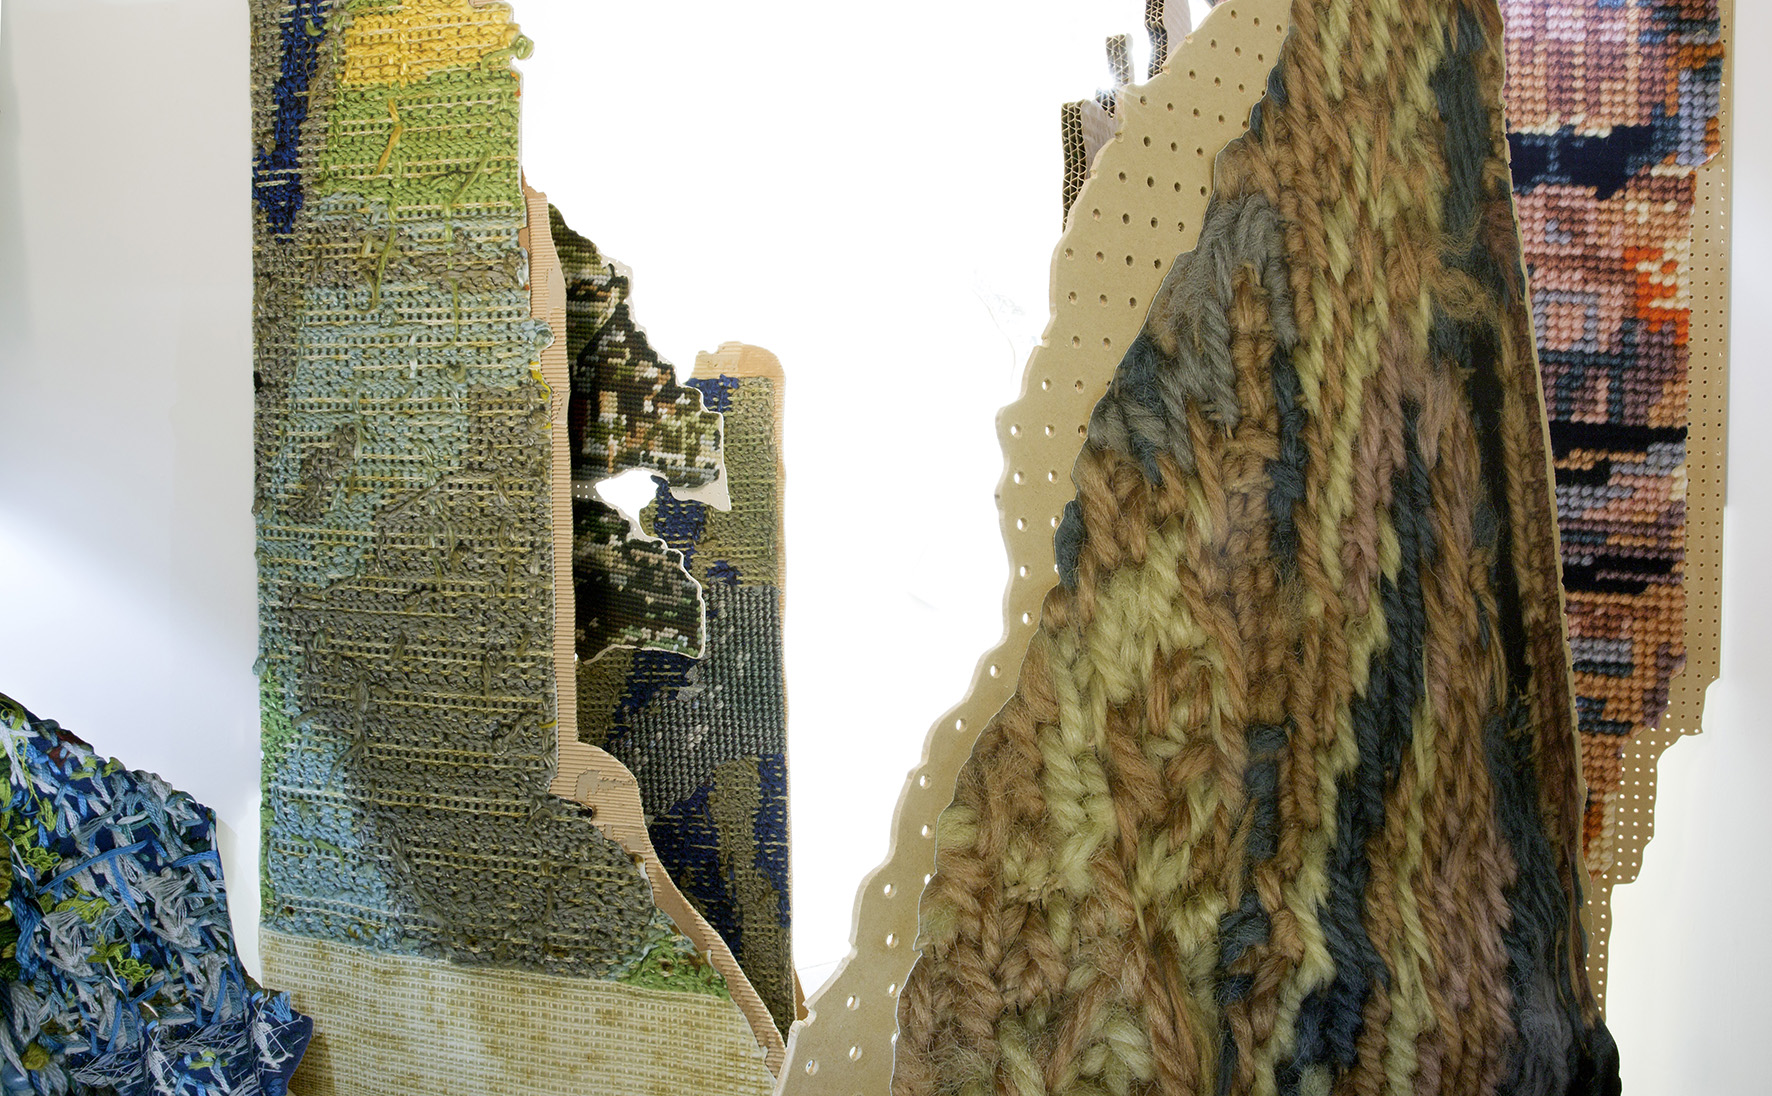 Drawloom (Diagram for an artwork): Monumental fragments of landscape stand in a room.